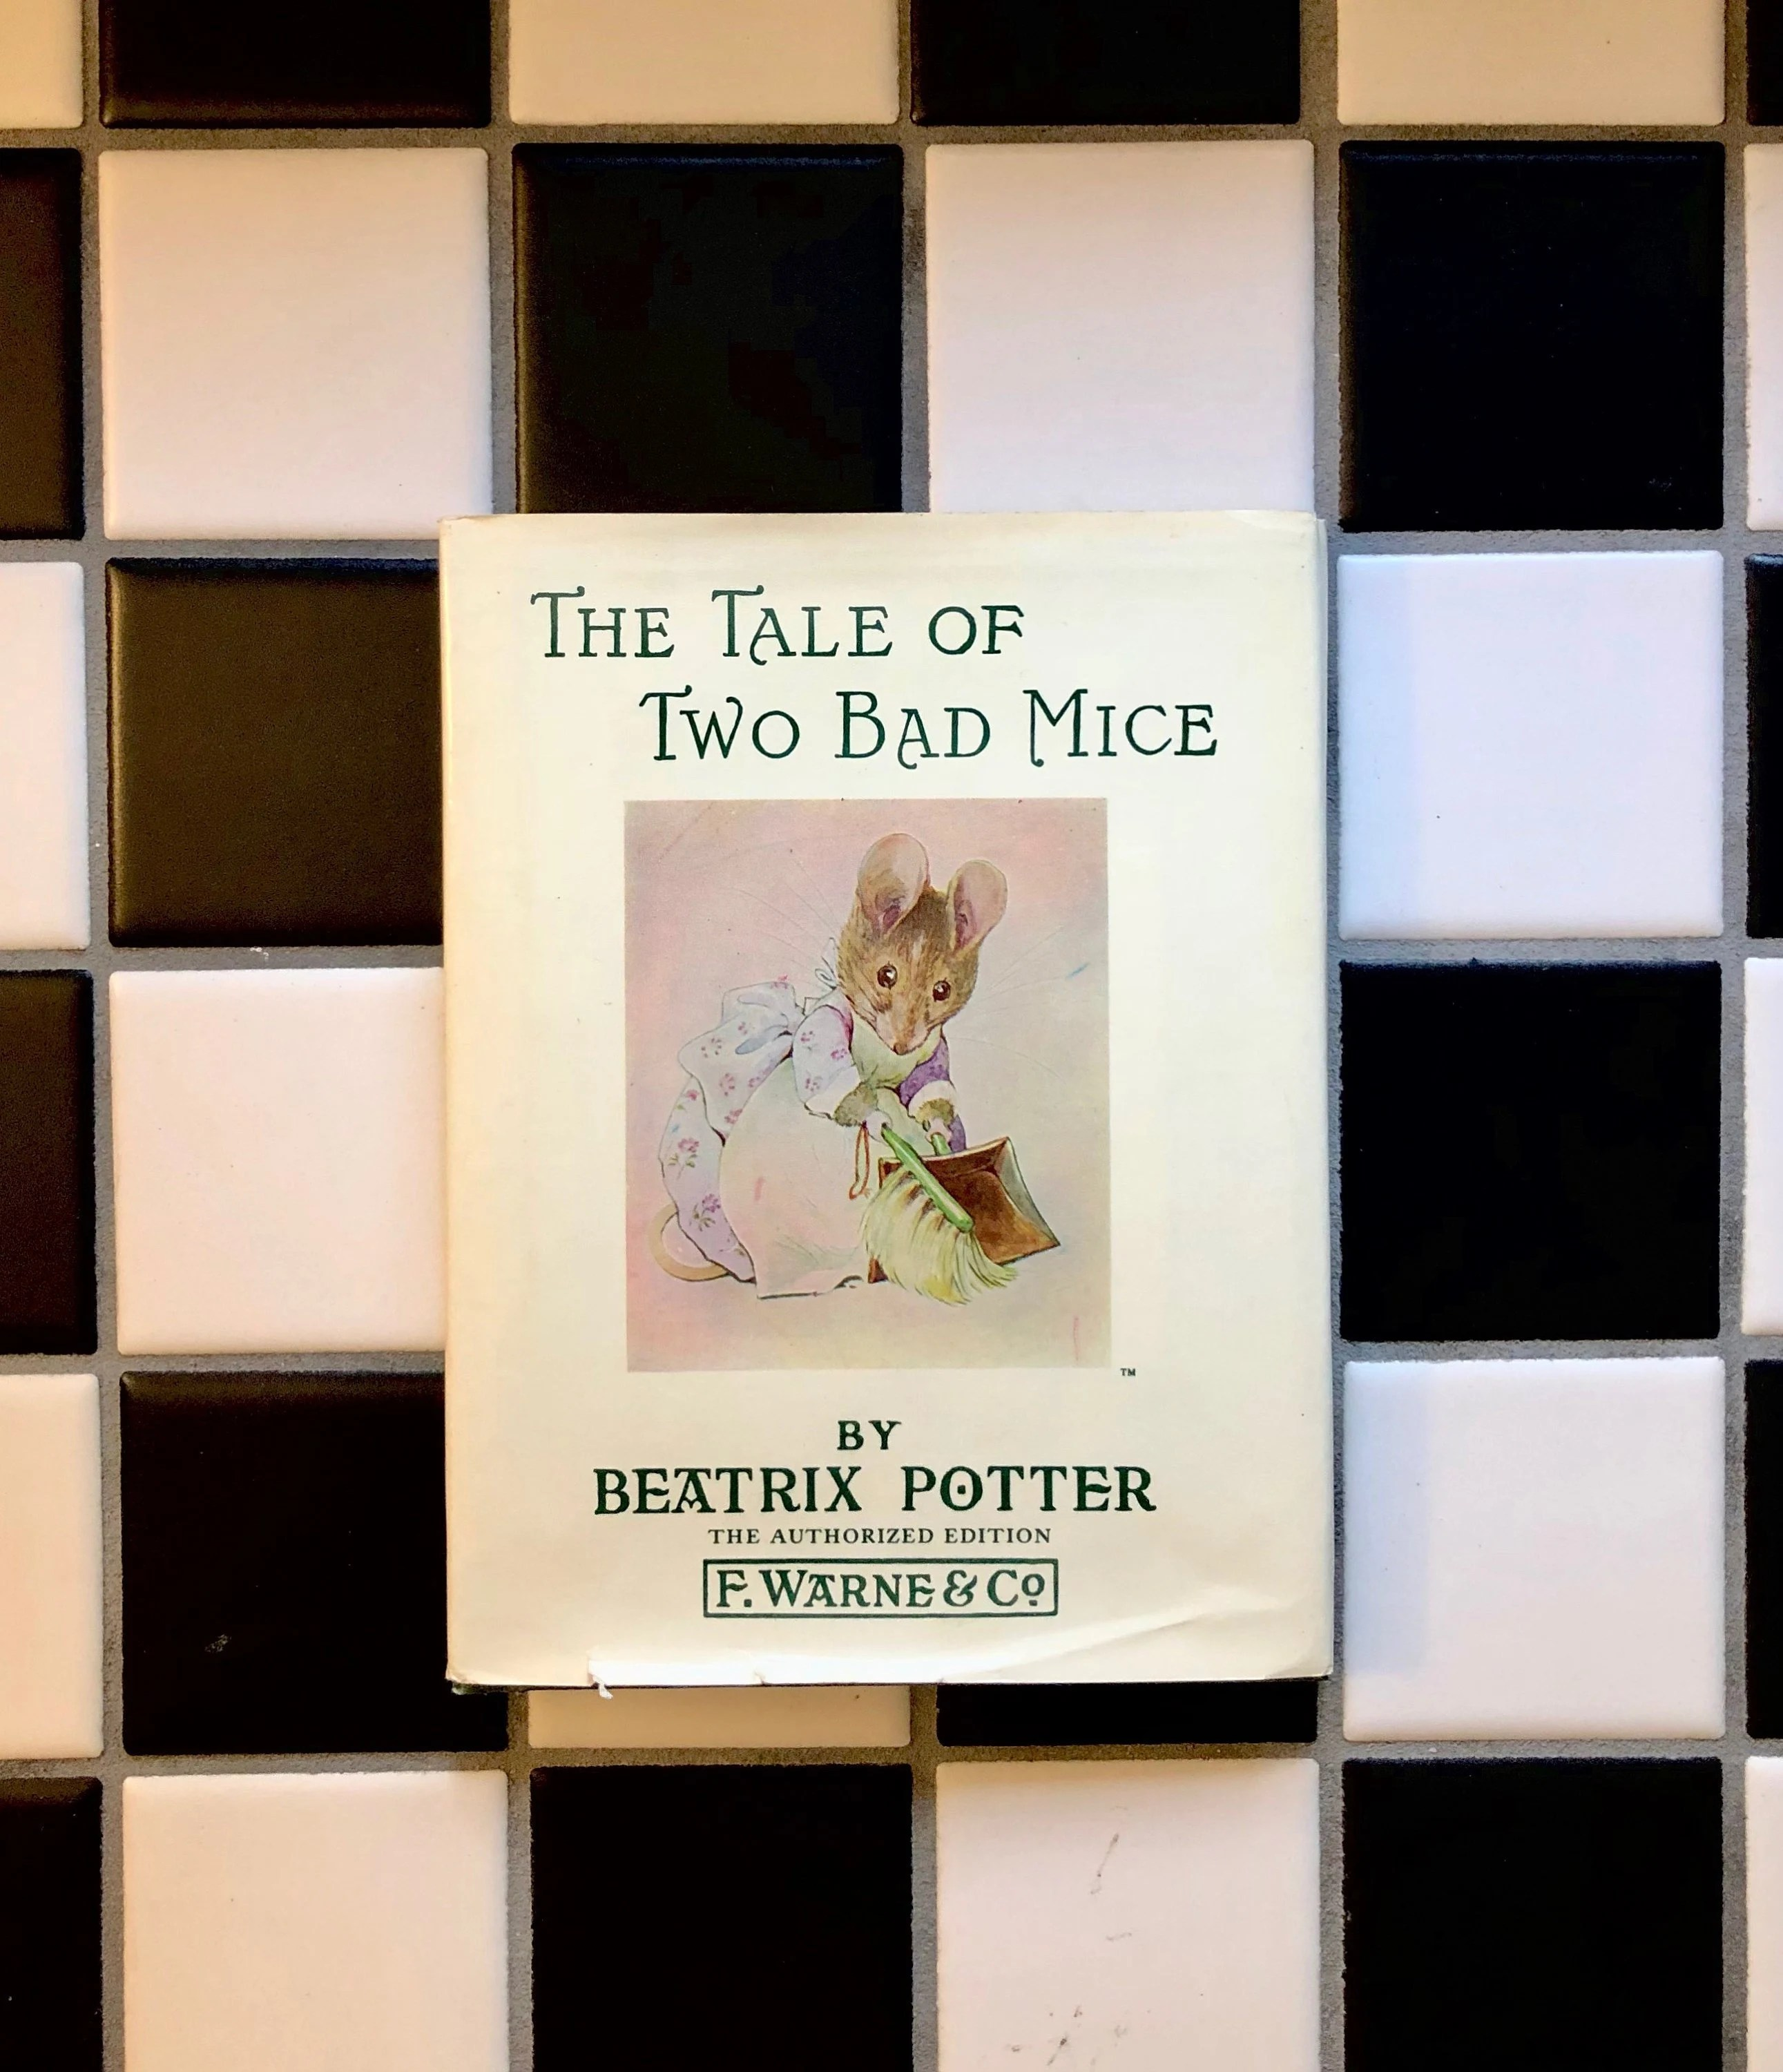 Vintage Bad Copy Vintage Beatrix Potter The Tale Of Two Bad Mice 1932 With Dust Jacket Gently Used F Warne Co Printed Bound By Rose Printing Lovely